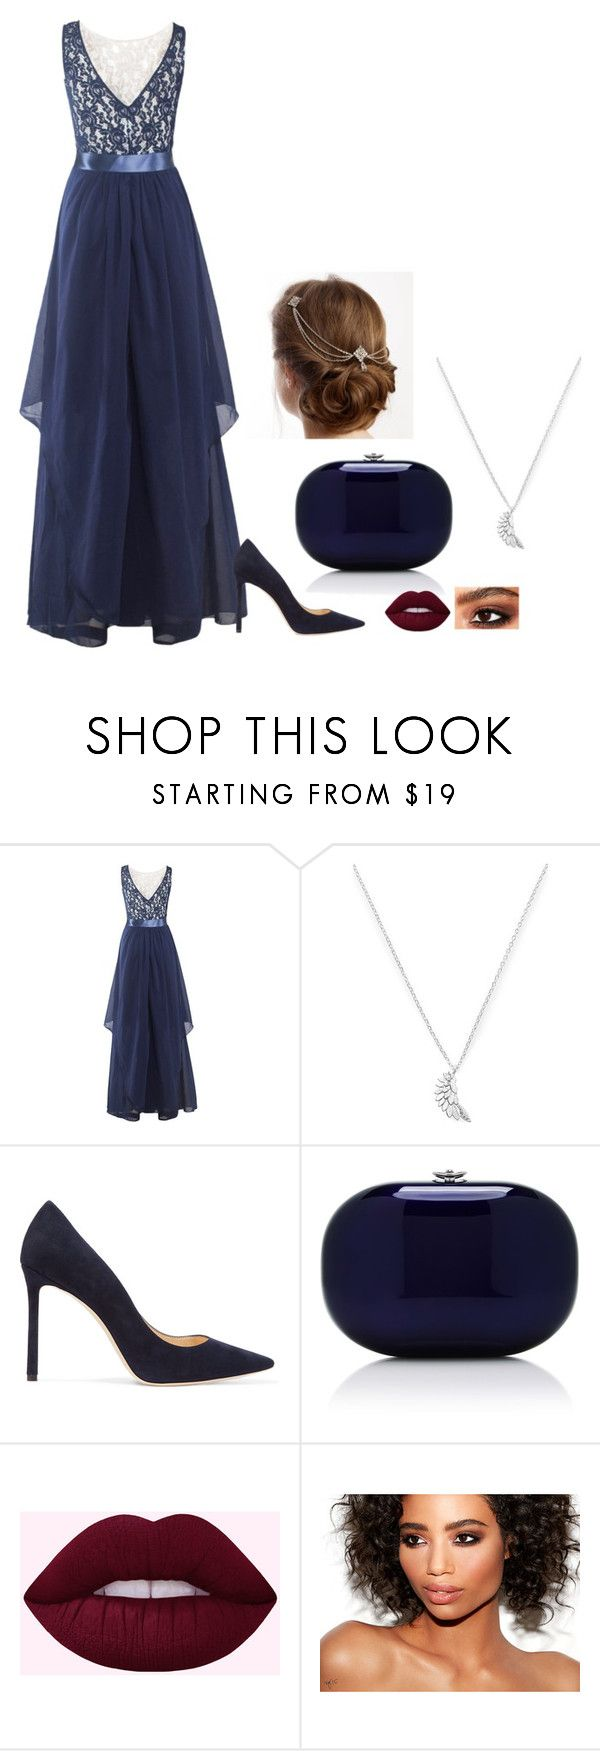 """N/A # 1145"" by terra-wendy on Polyvore featuring Estella Bartlett, Jimmy Choo and Jeffrey Levinson"